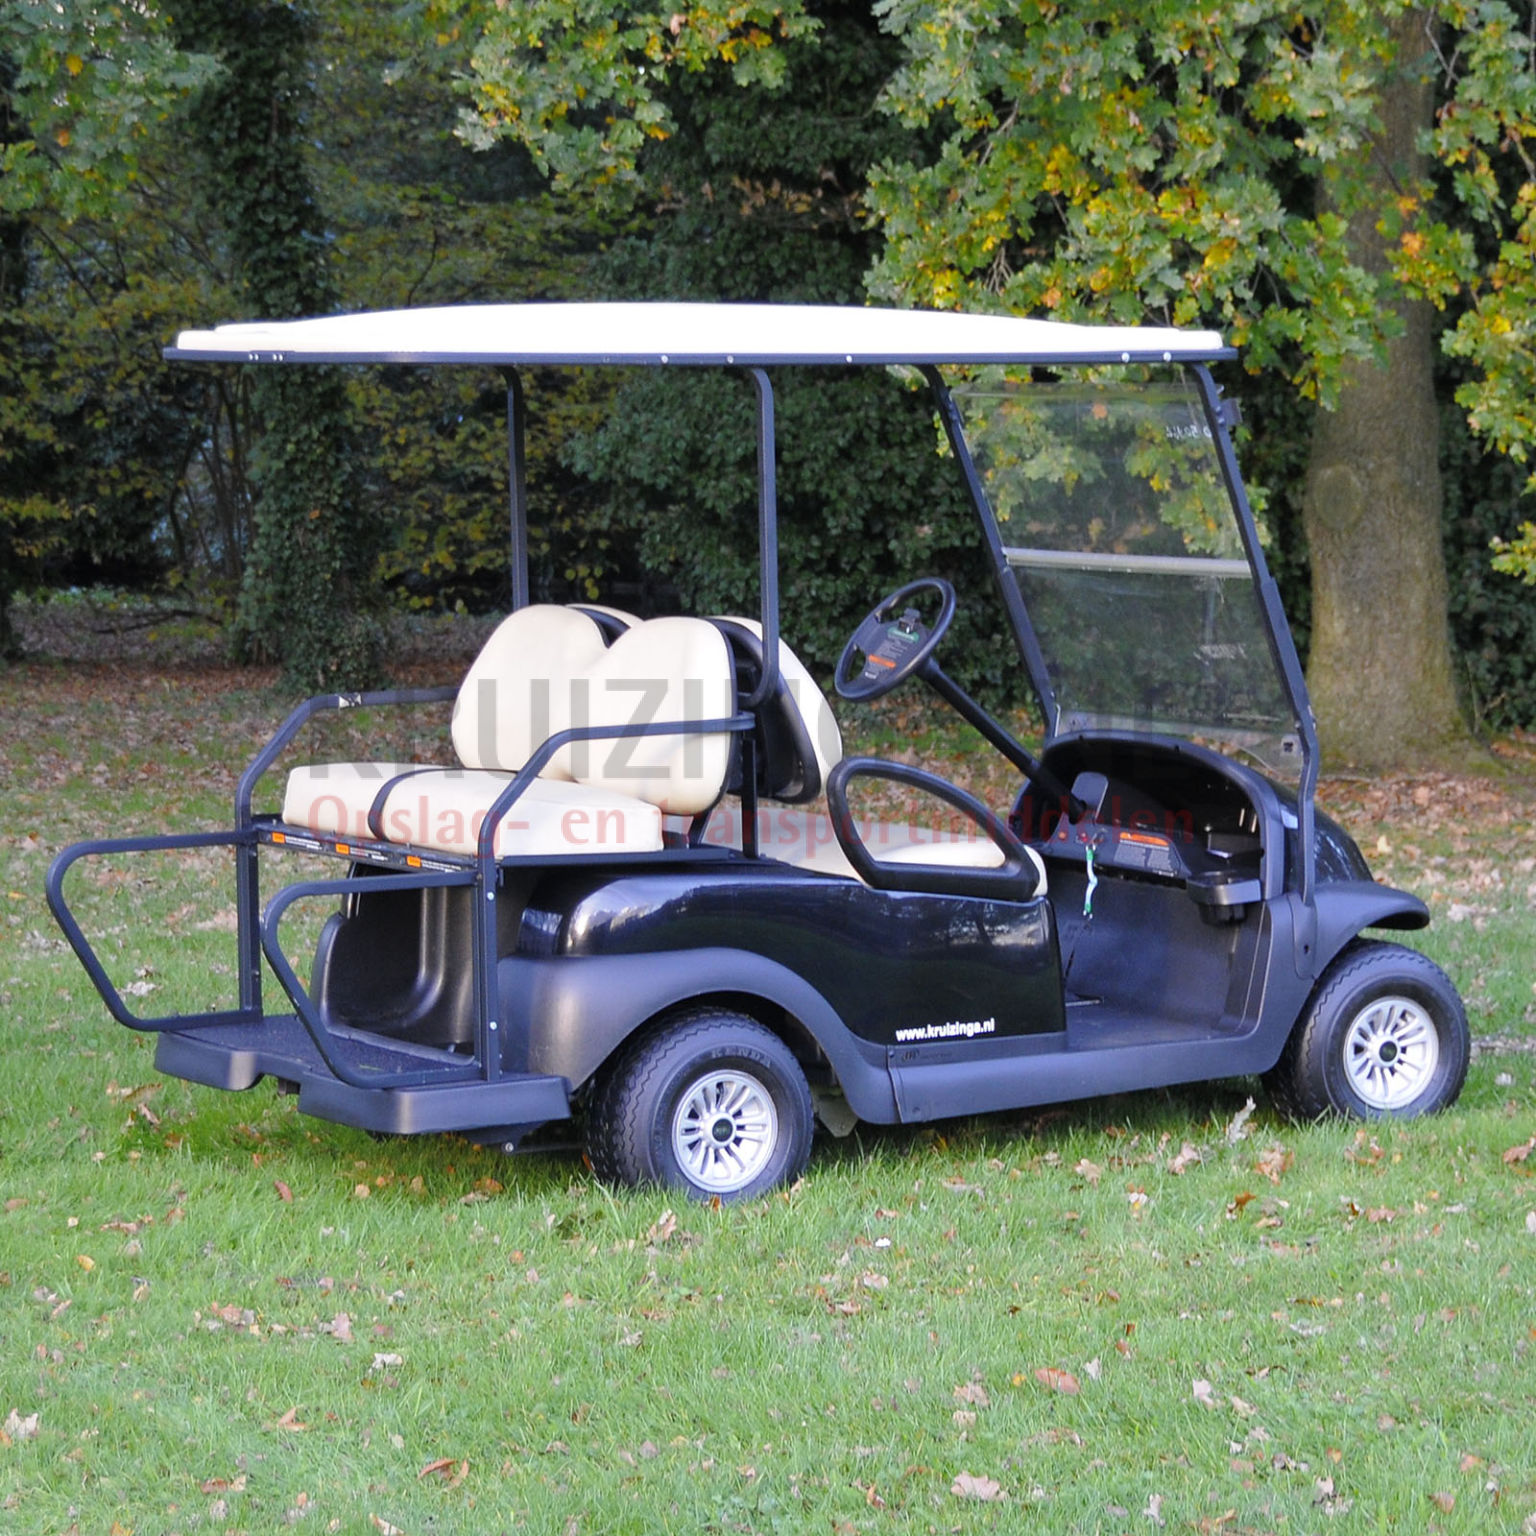 golf cart club car precedent pour 4 personnes lectrique occasion. Black Bedroom Furniture Sets. Home Design Ideas